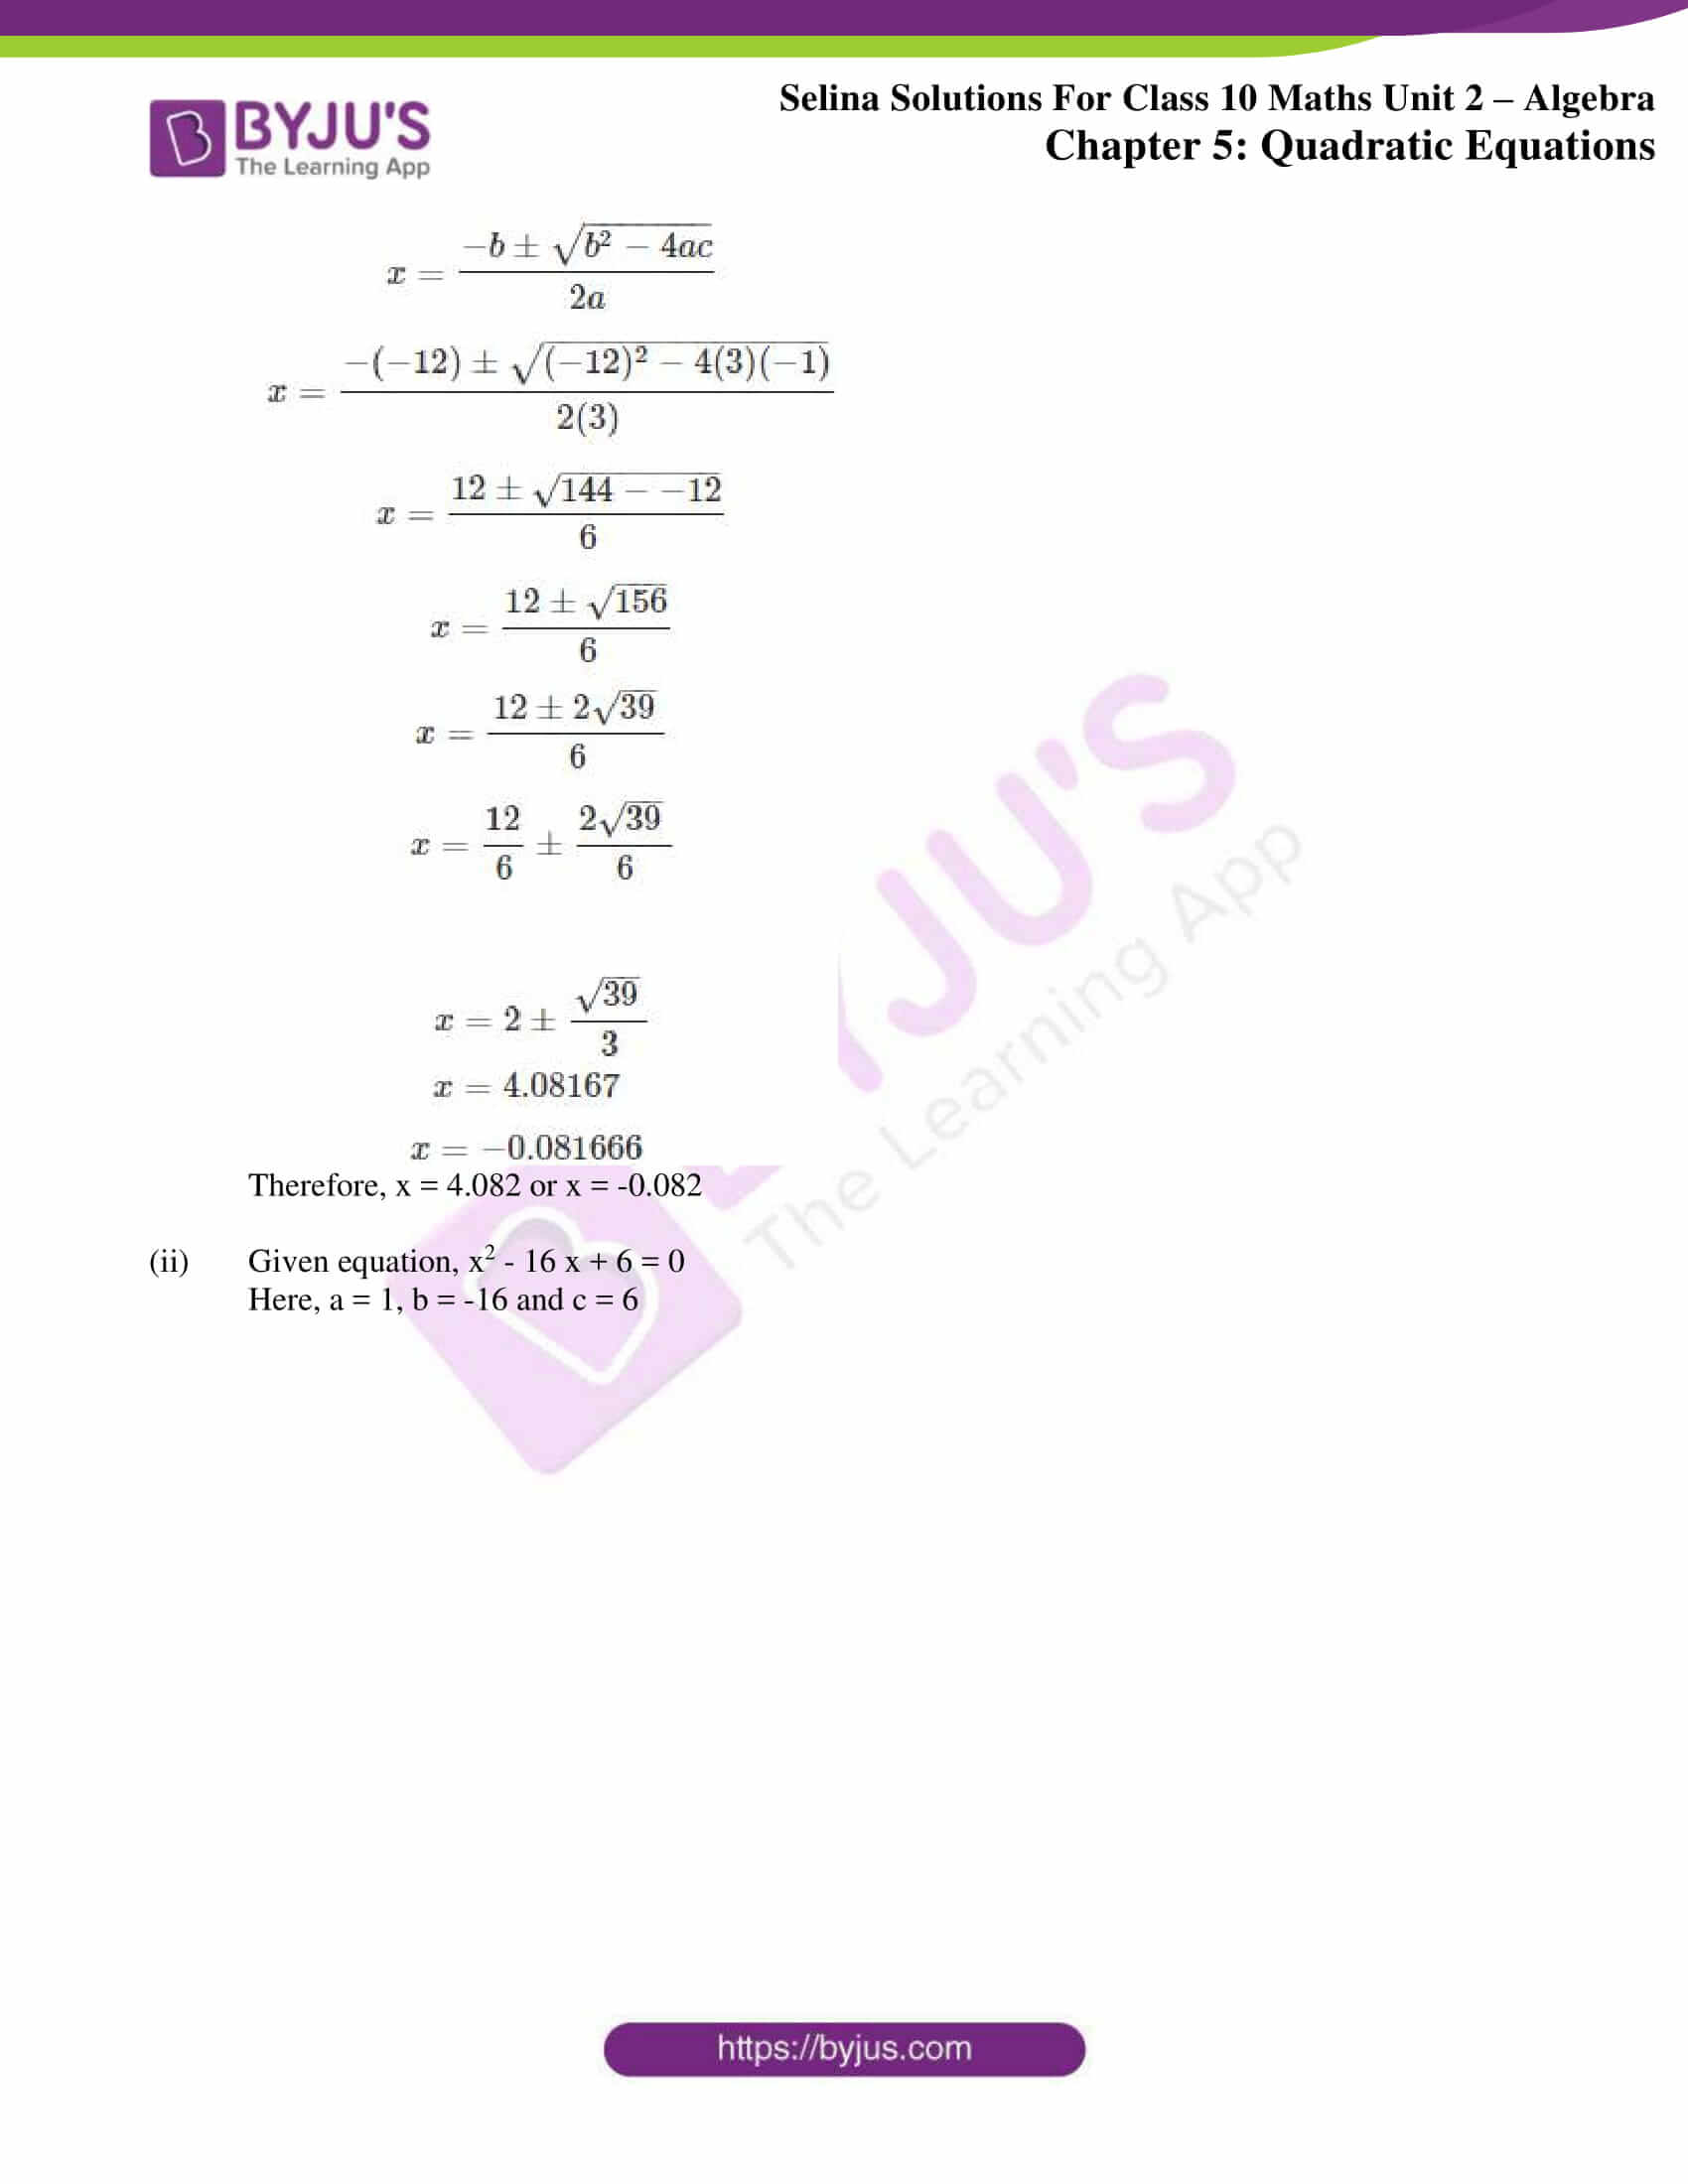 selina solution concise maths class 10 chapter 5